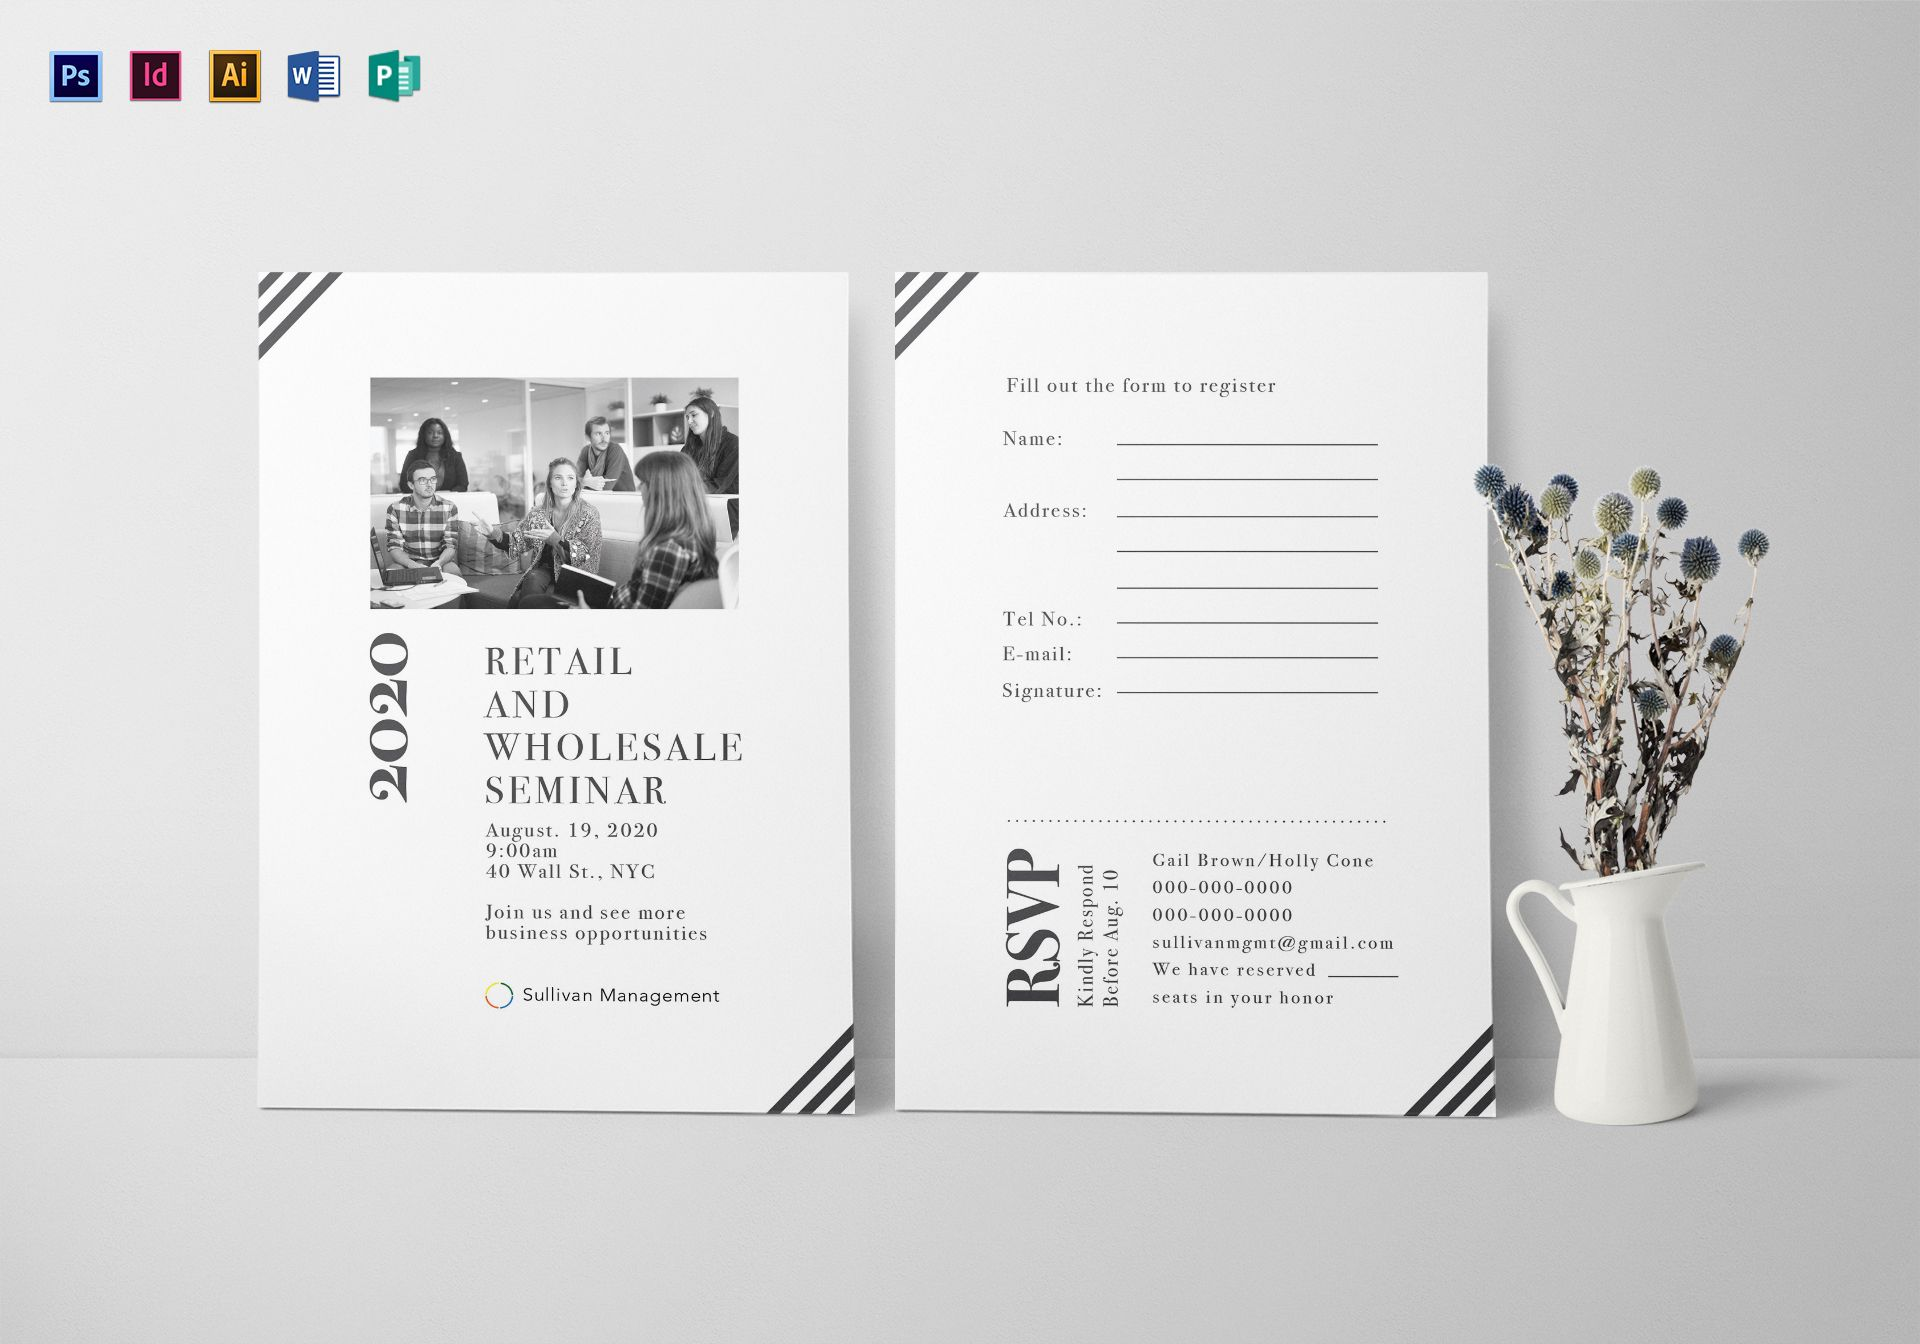 Seminar Invitation Card Design Template in PSD Word Publisher